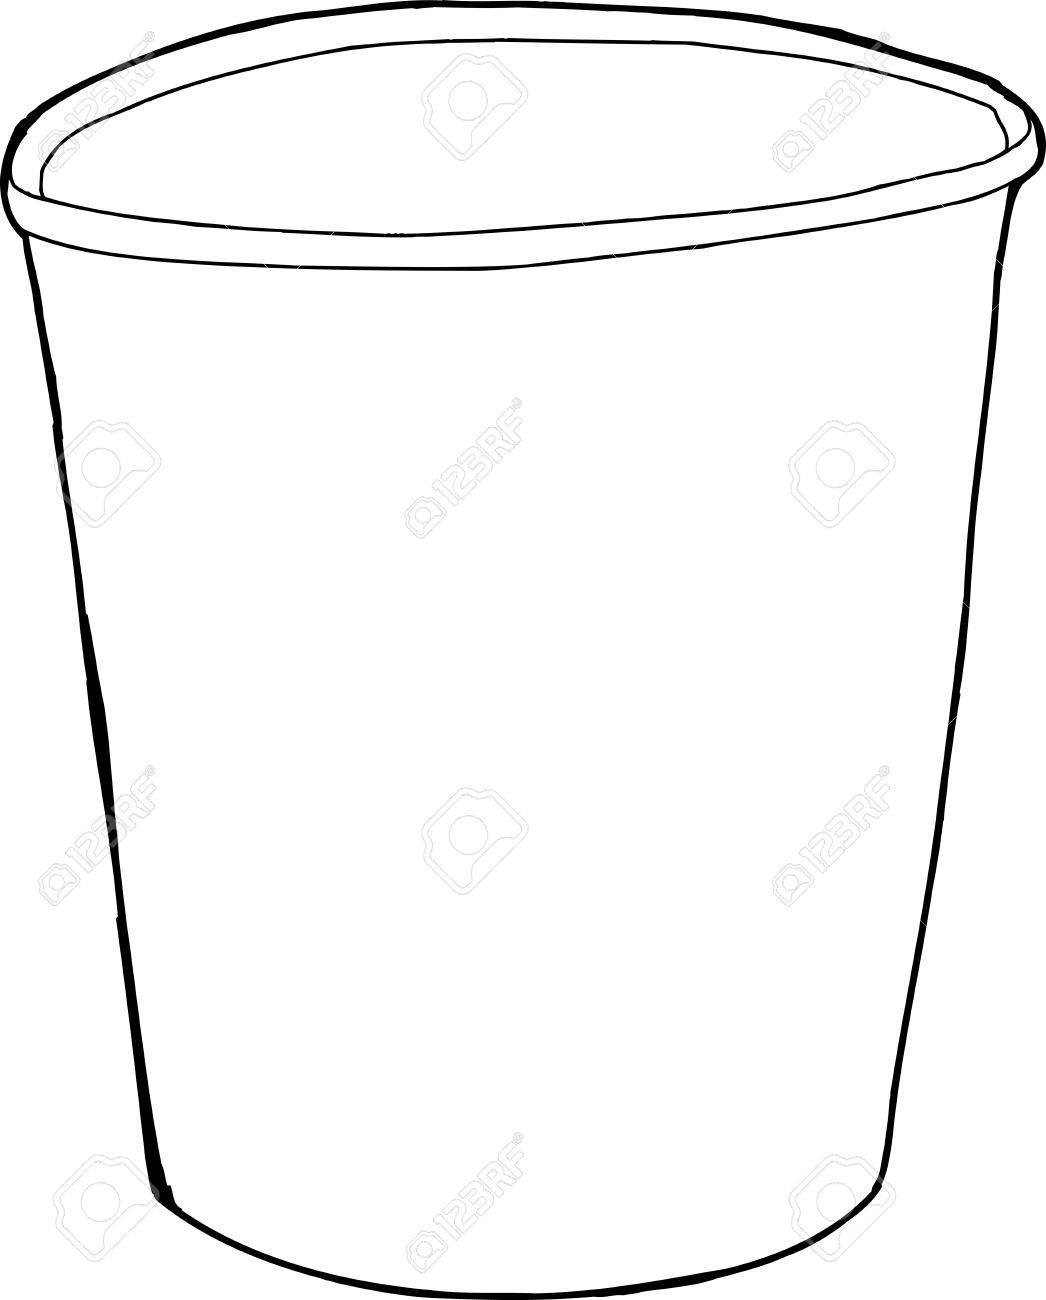 1046x1300 Single Empty Cup Outline Drawing Over White Background Royalty